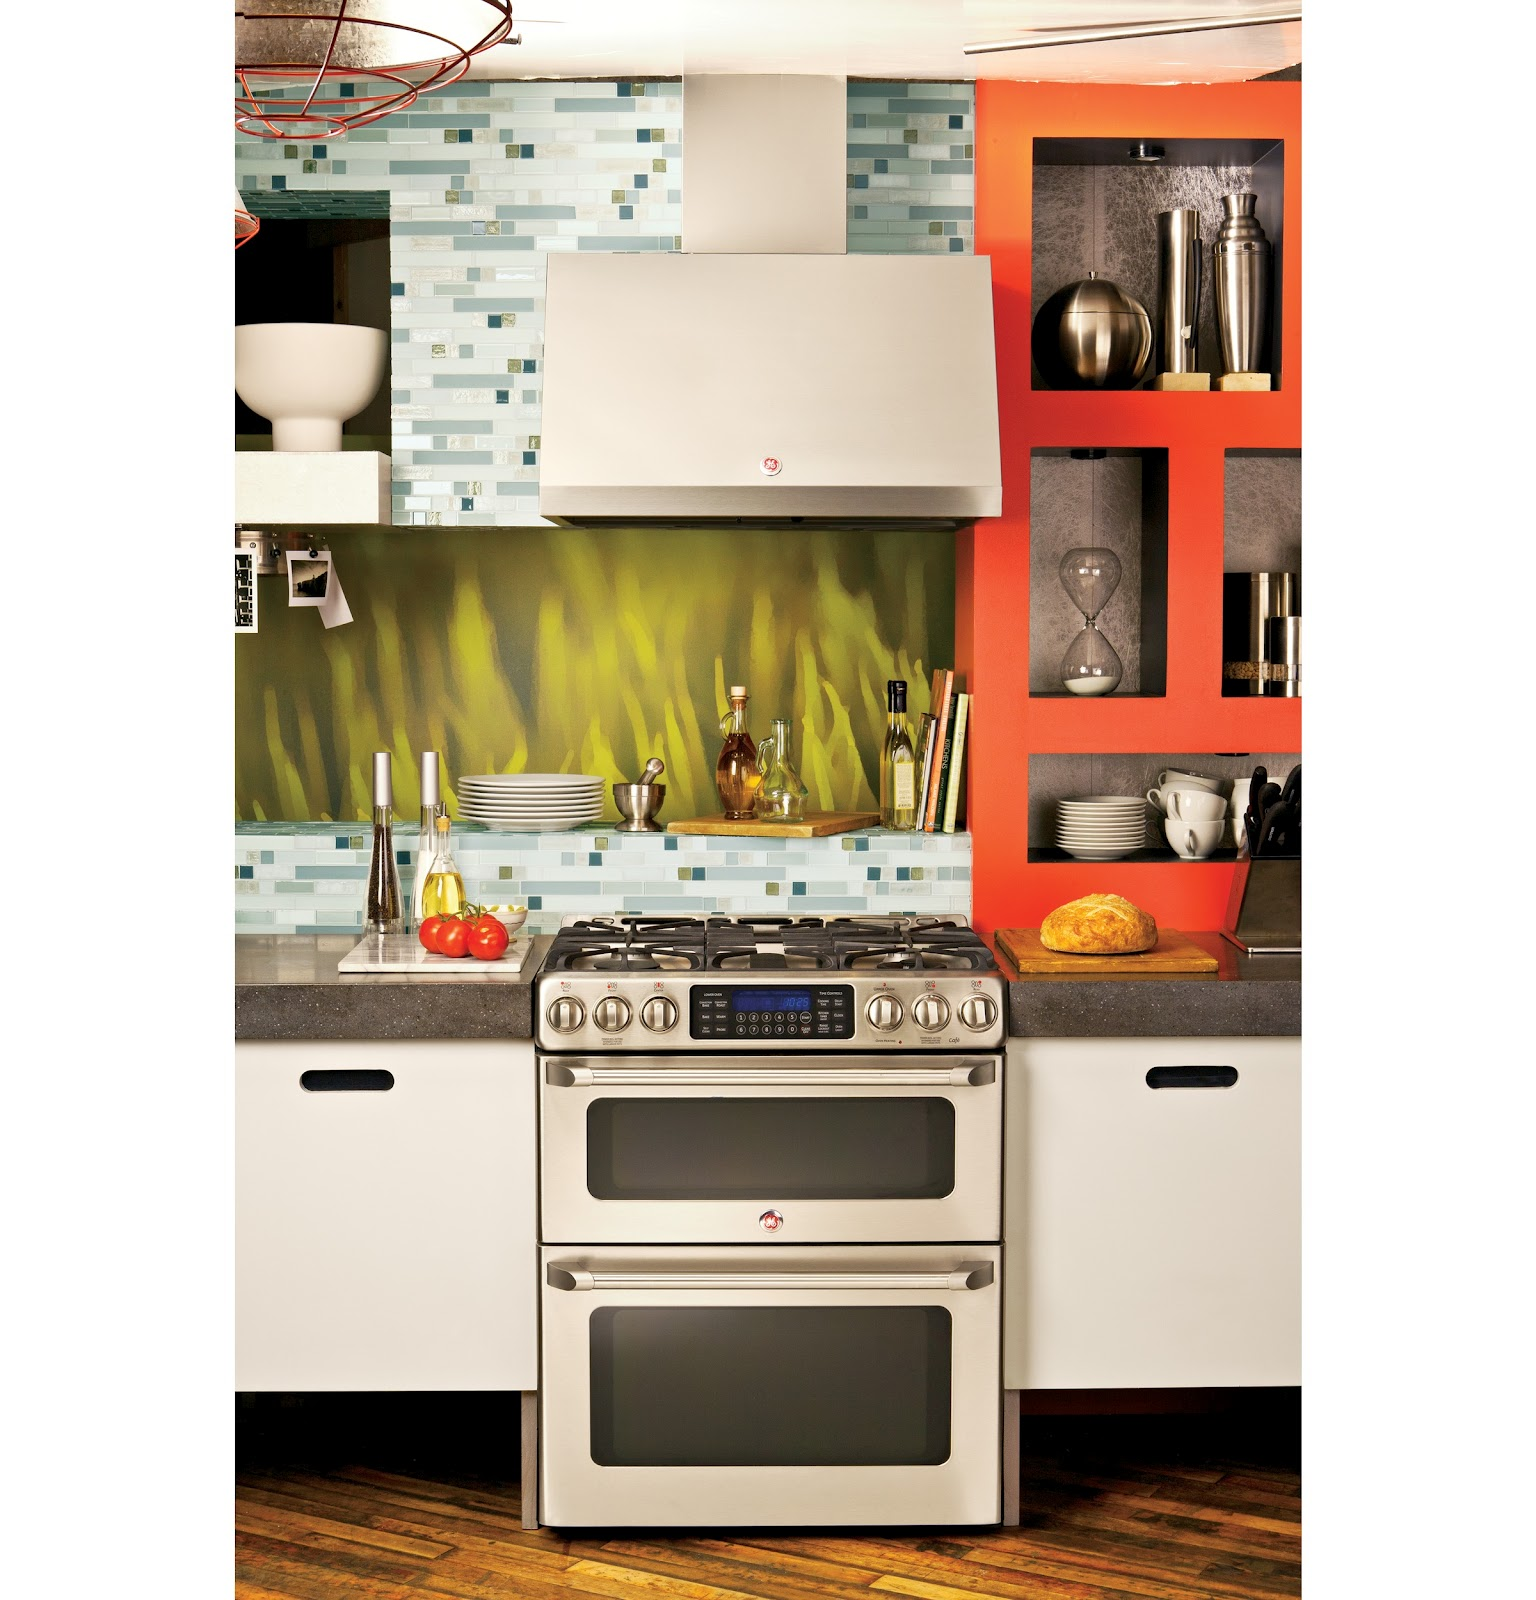 Microwave Conventional Oven Combo The Art of the Kitchen: GE CAFE: A stylish new look for GE ...